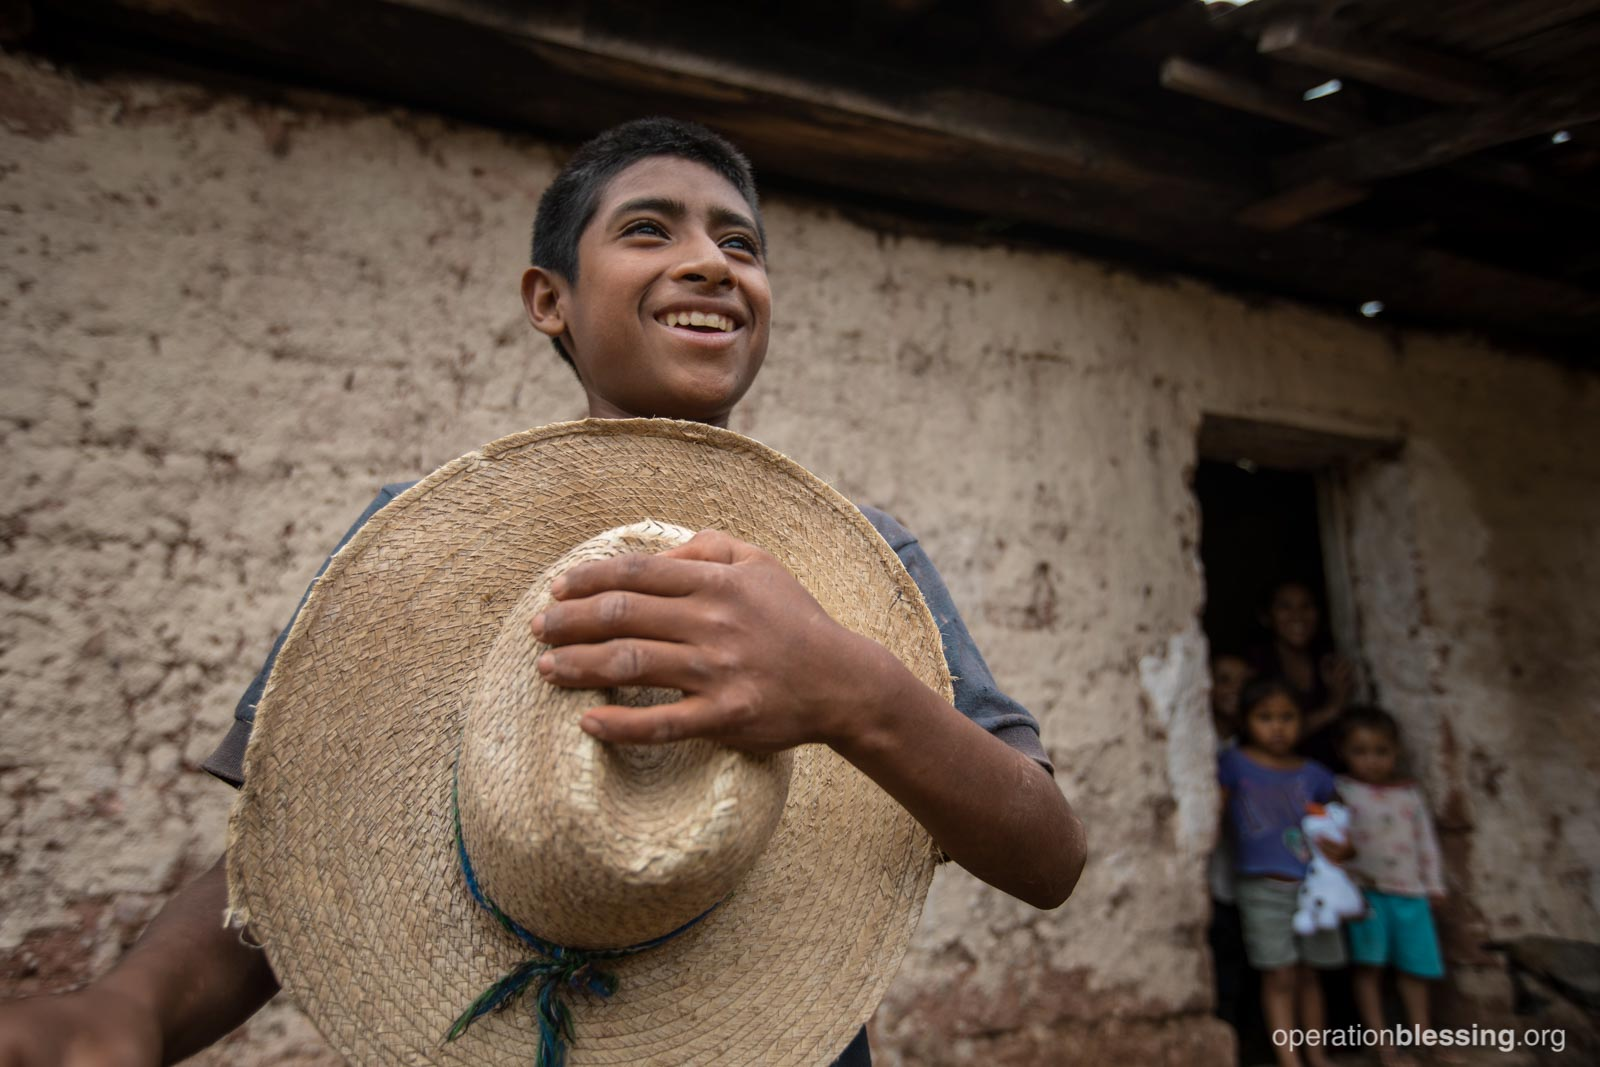 Juan is thankful for clean water.